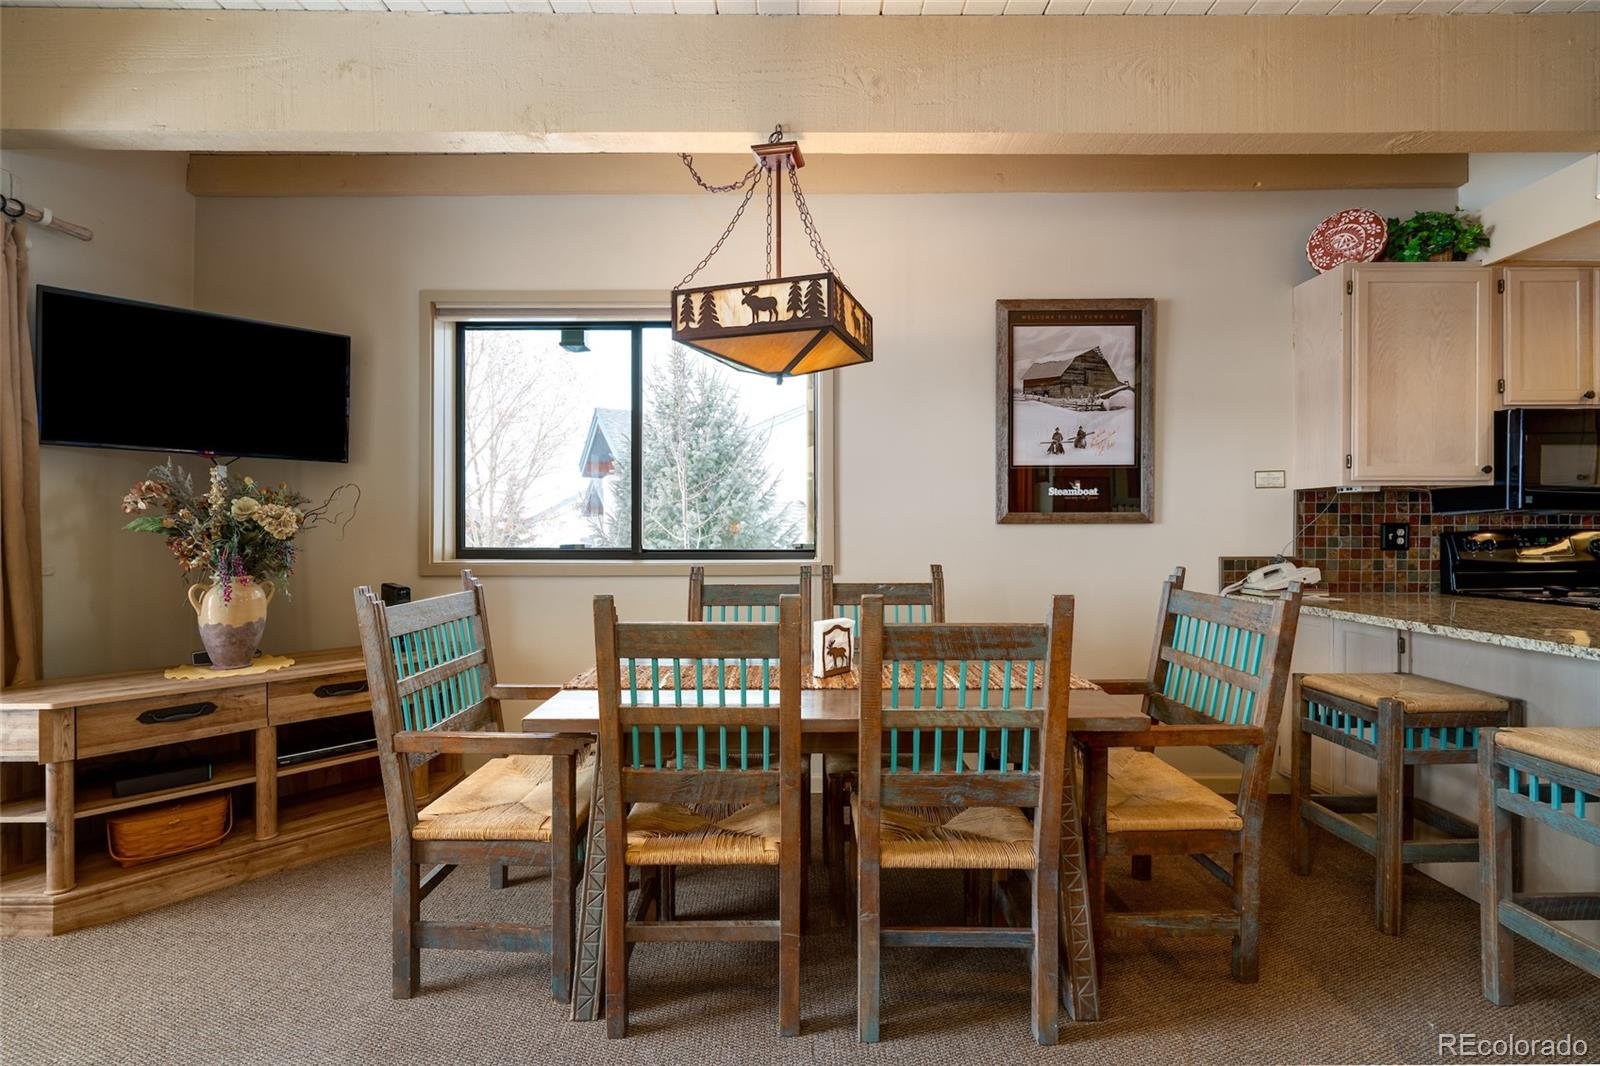 MLS# 8046163 - 8 - 2355 Storm Meadows Dr 311  #A-311, Steamboat Springs, CO 80487